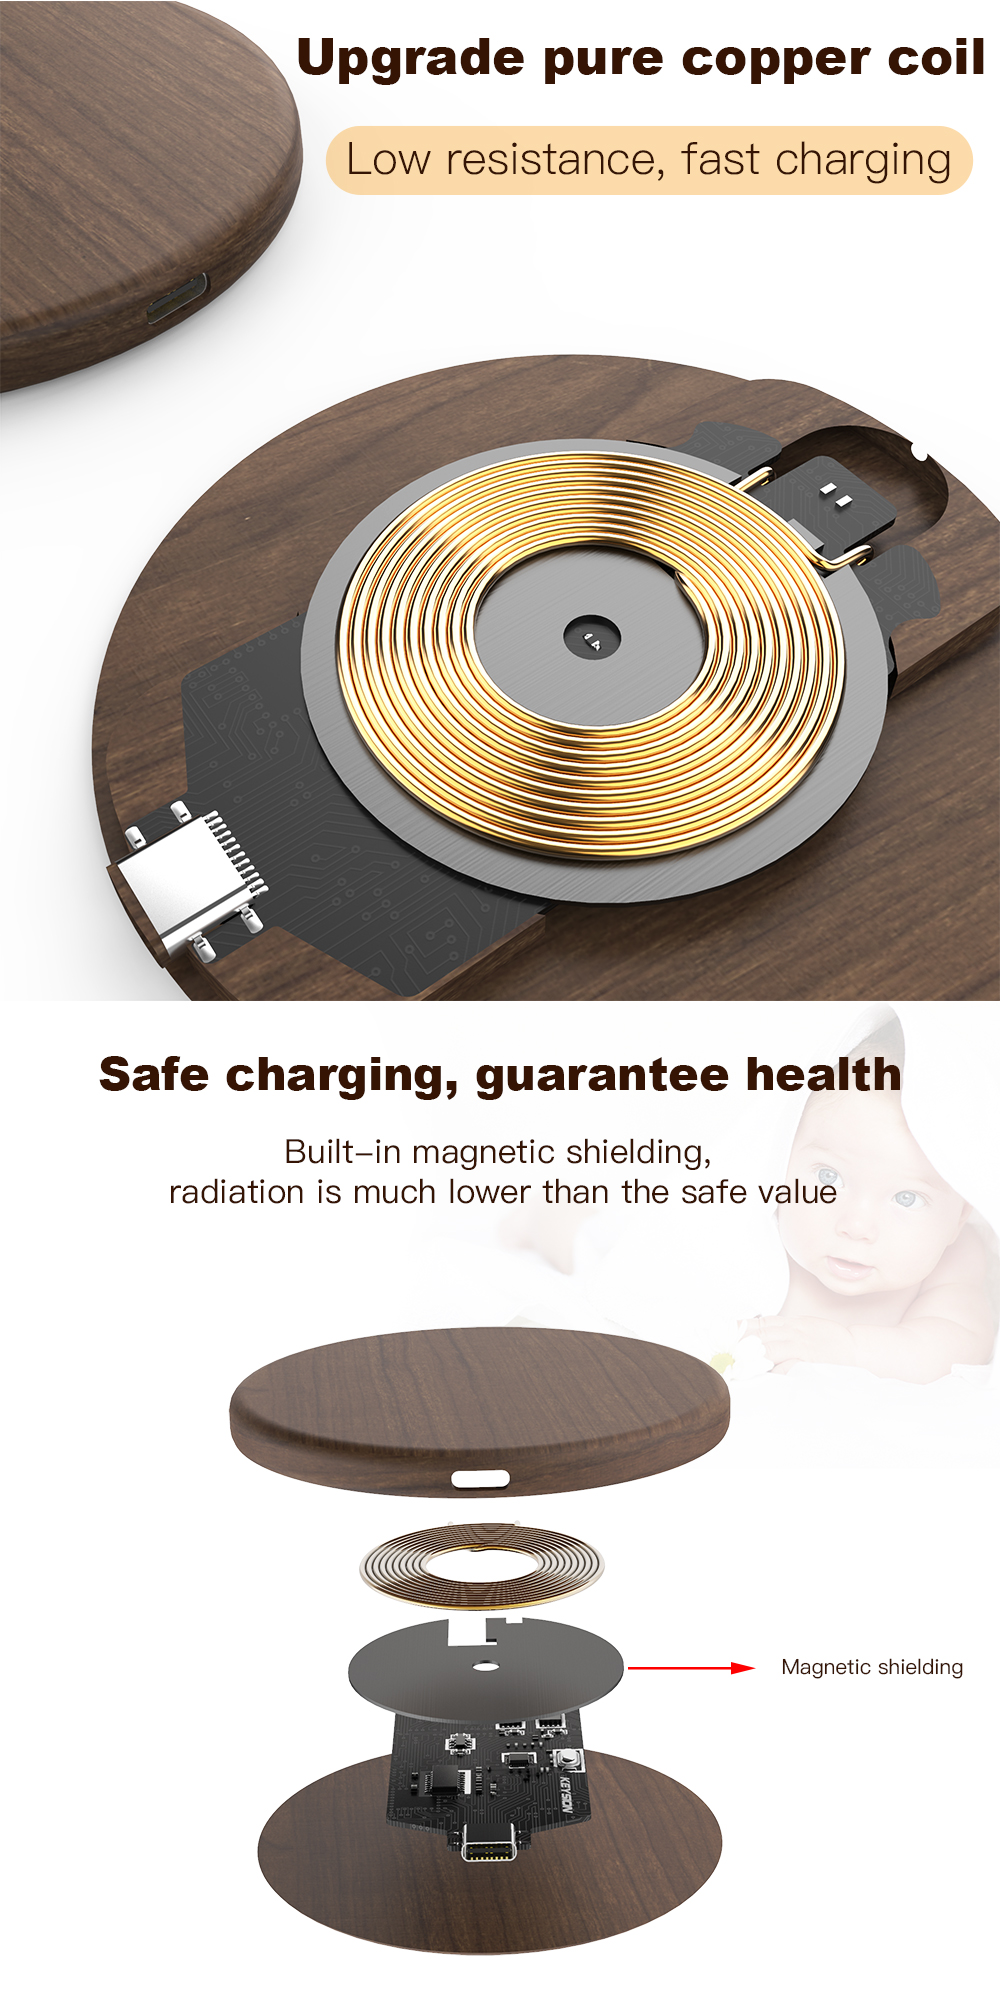 KEYSION 10W Qi Fast Wireless Charger for iPhone XS Max XR 8 Plus Wireless Charging Wood Desktop Pad for Samsung S10 Xiaomi mi 9